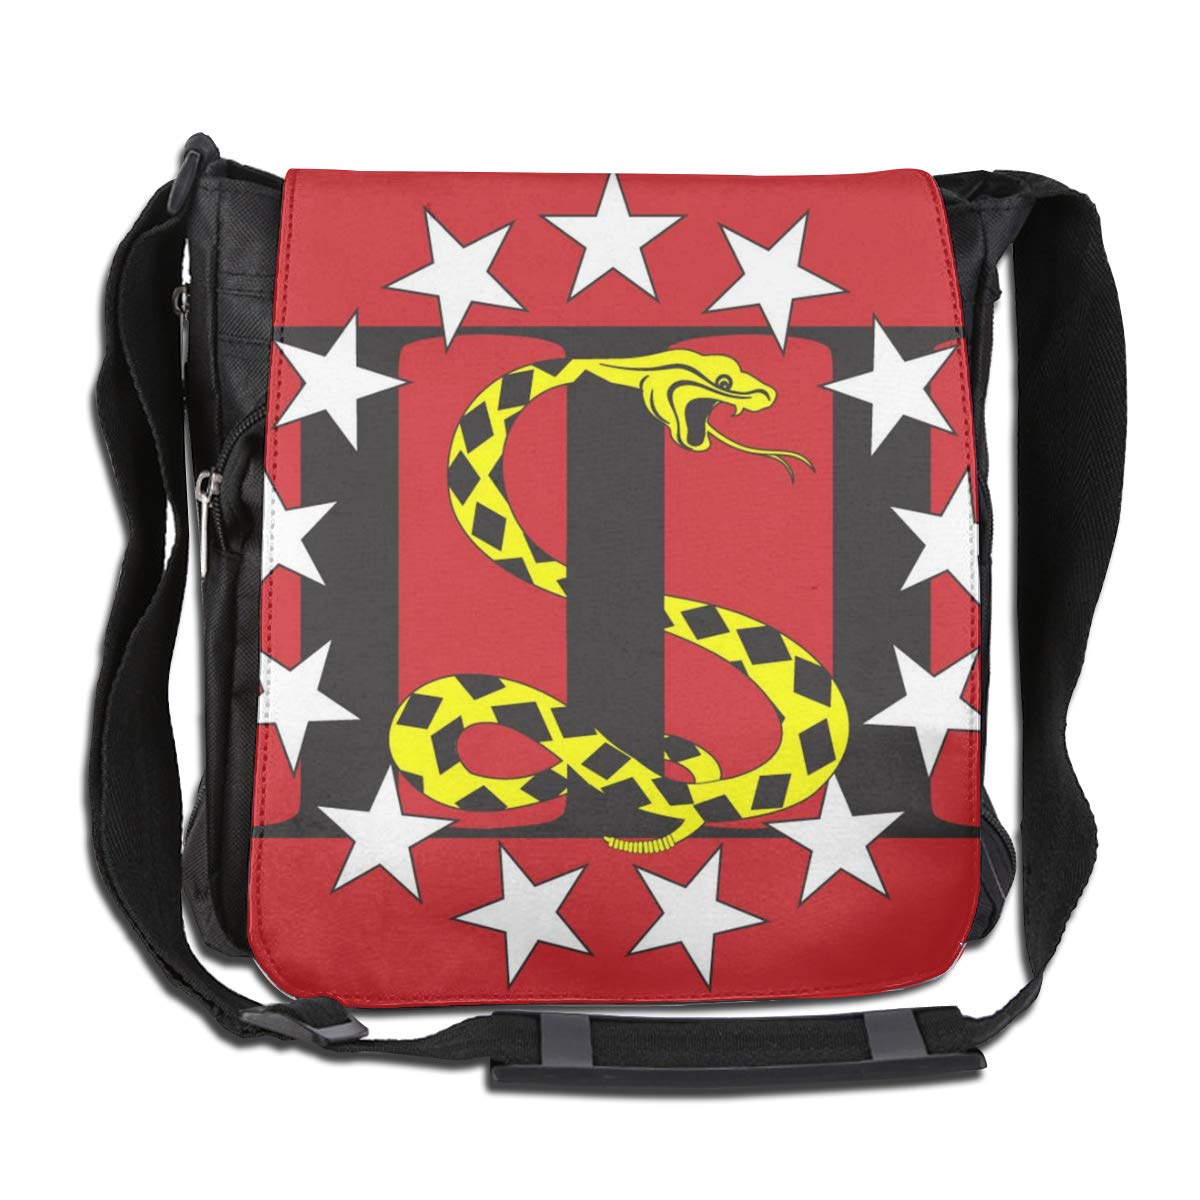 The Snake On The Flag Fashion Diagonal Single Shoulder Workout Bag